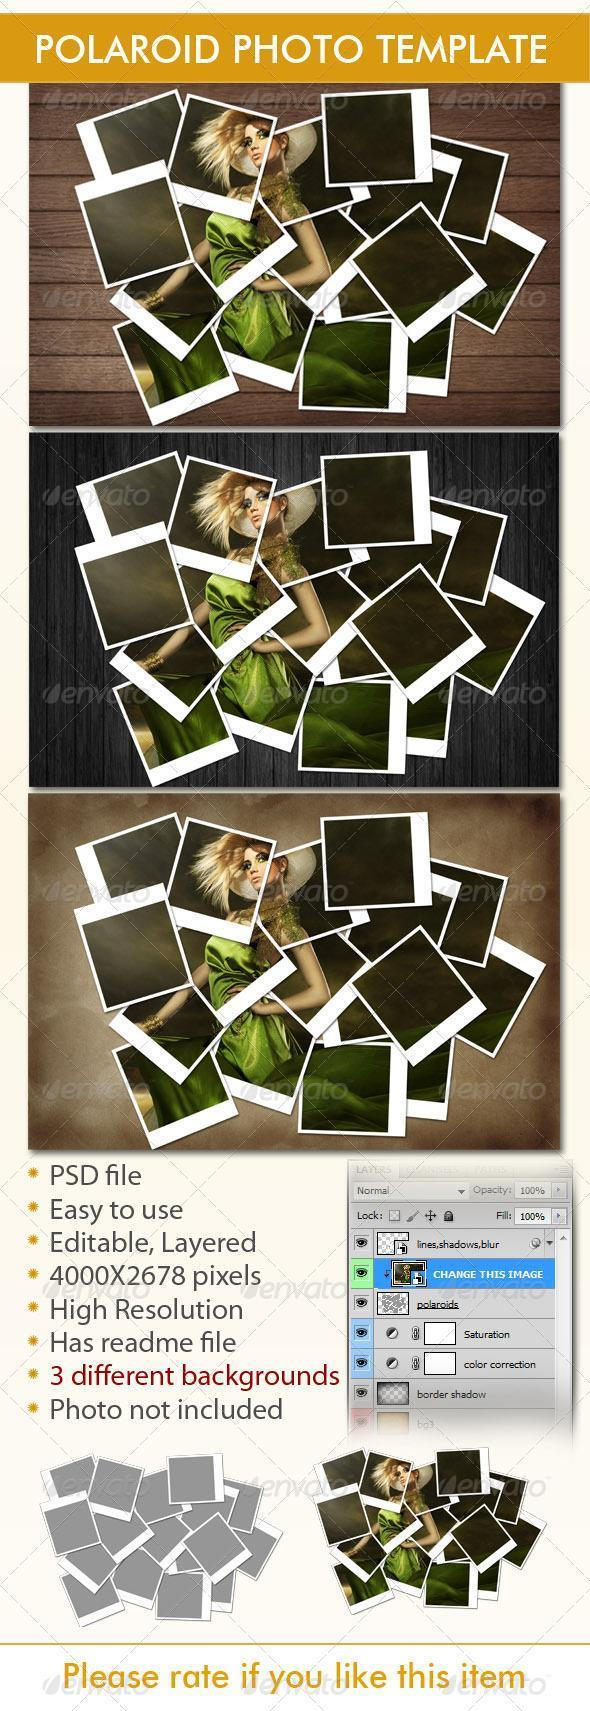 Instant Photo Frames Polaroid PSD Templates